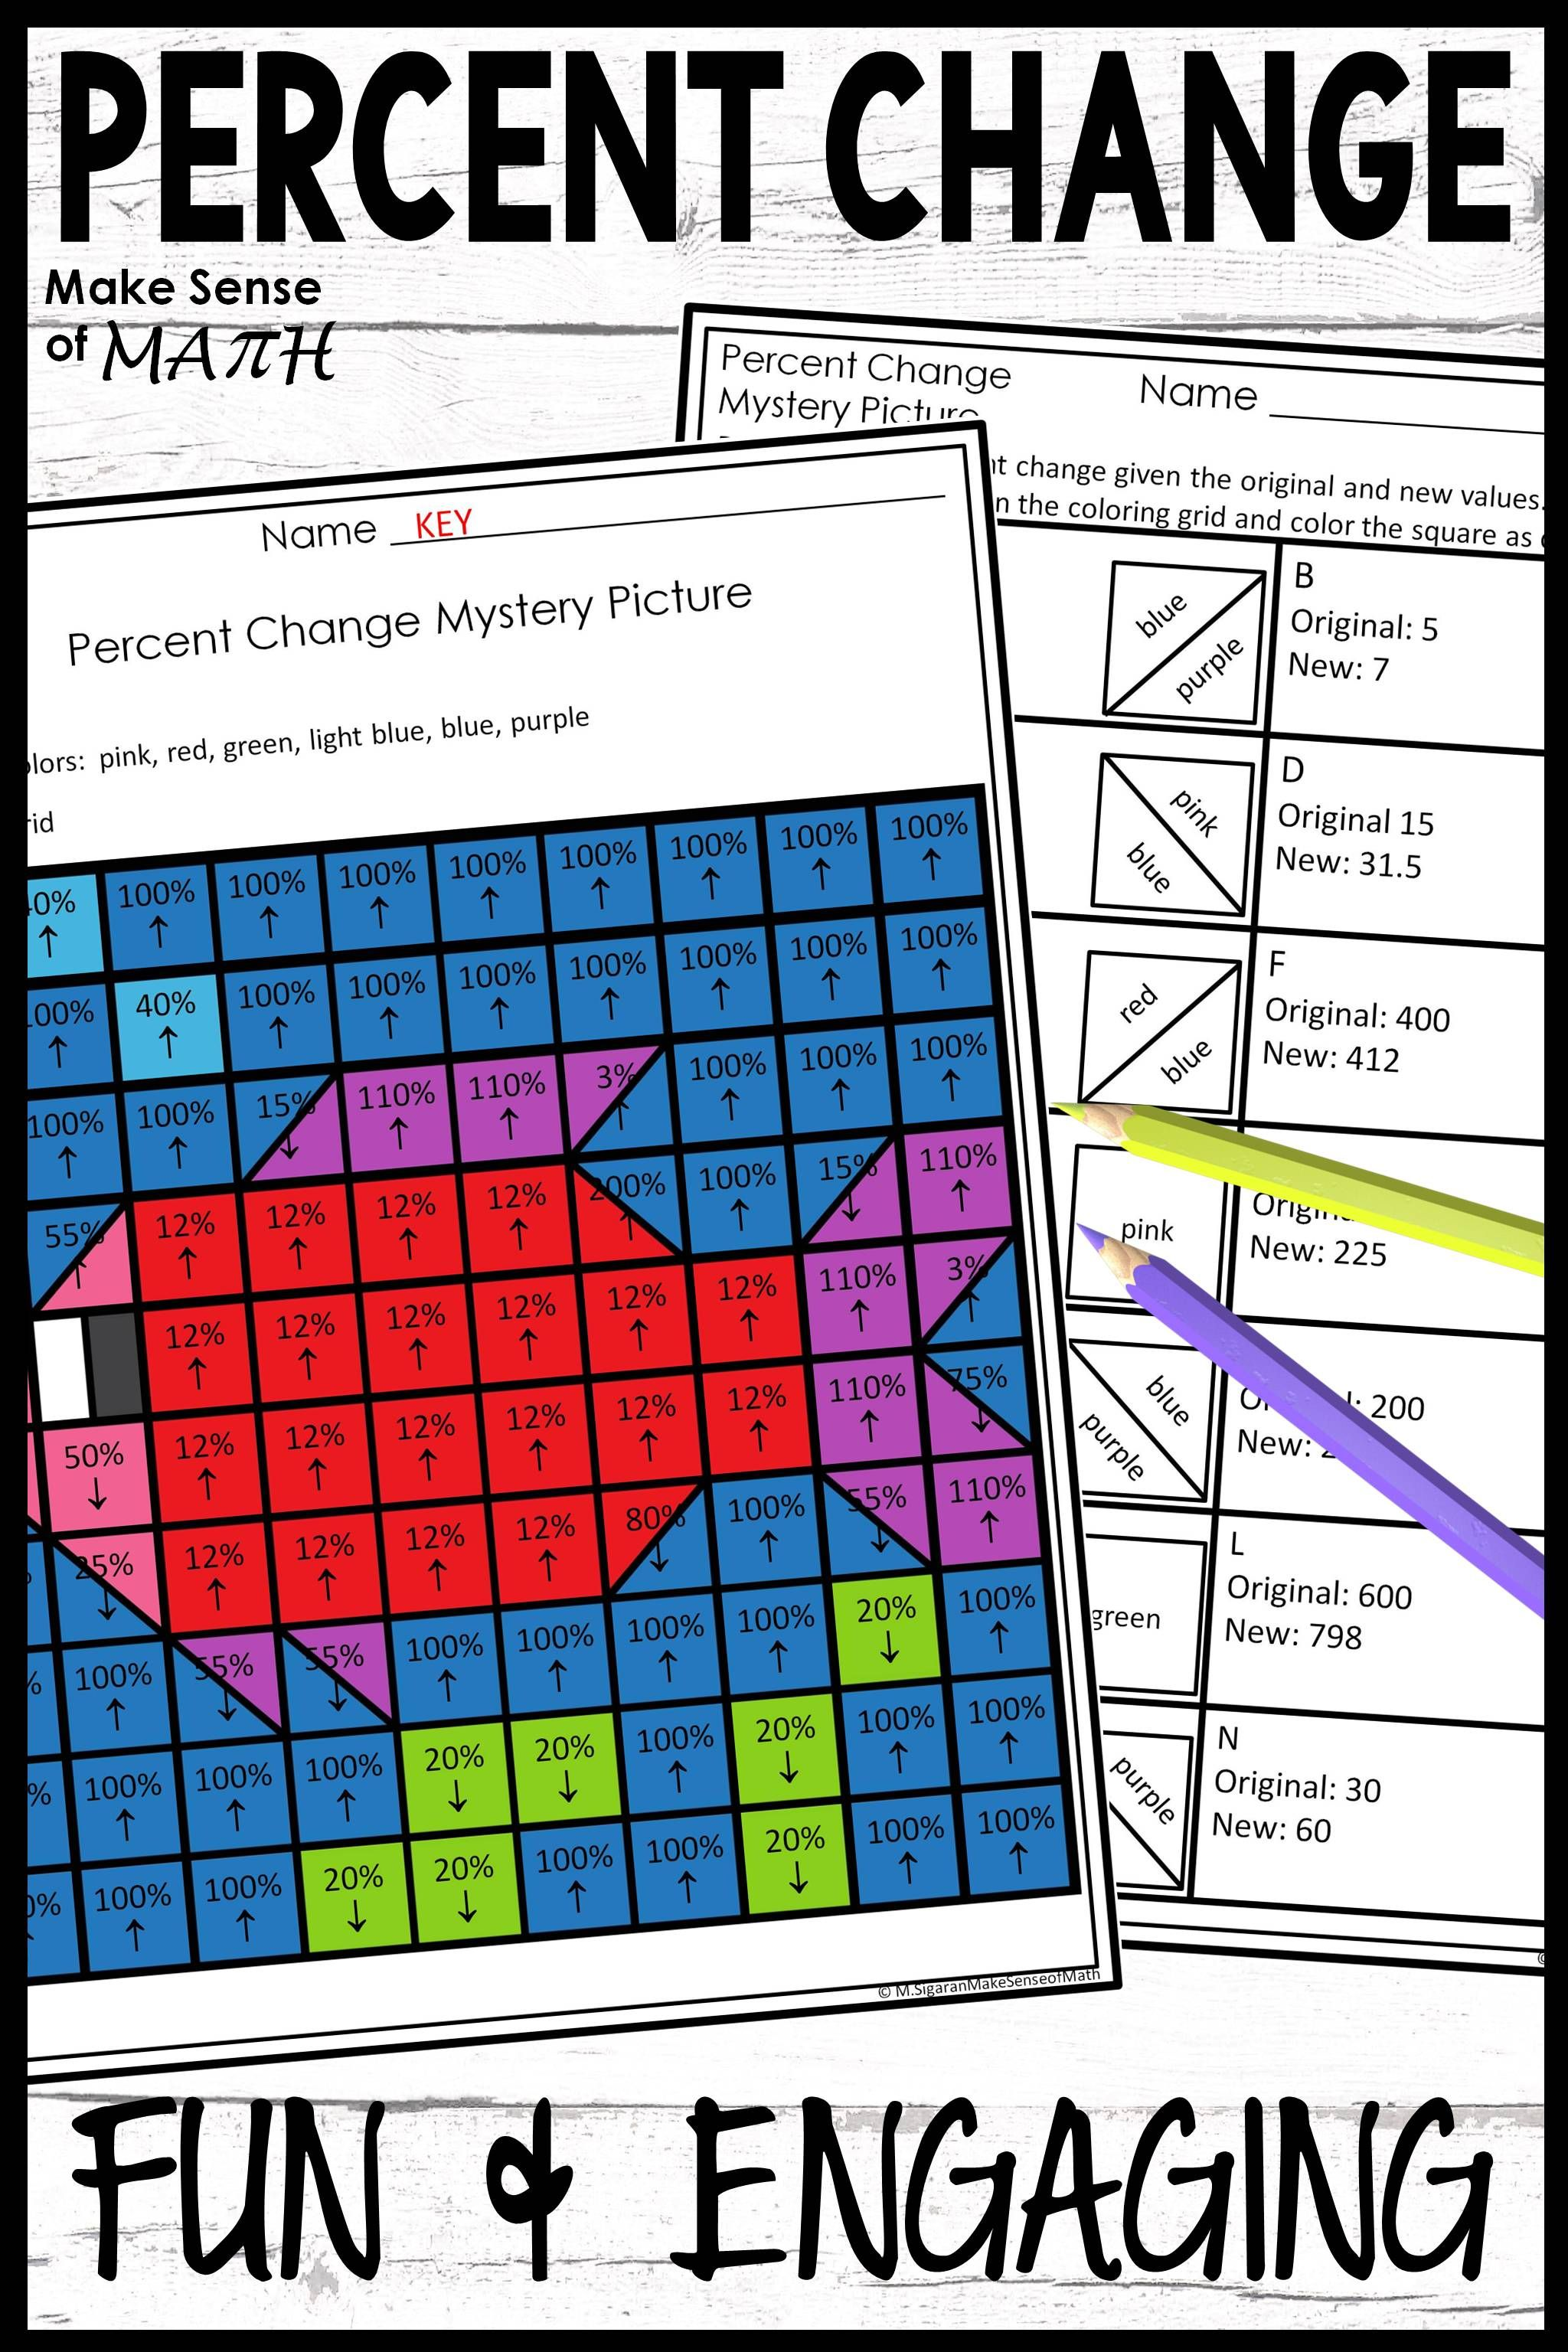 Percent Change Activity Worksheet